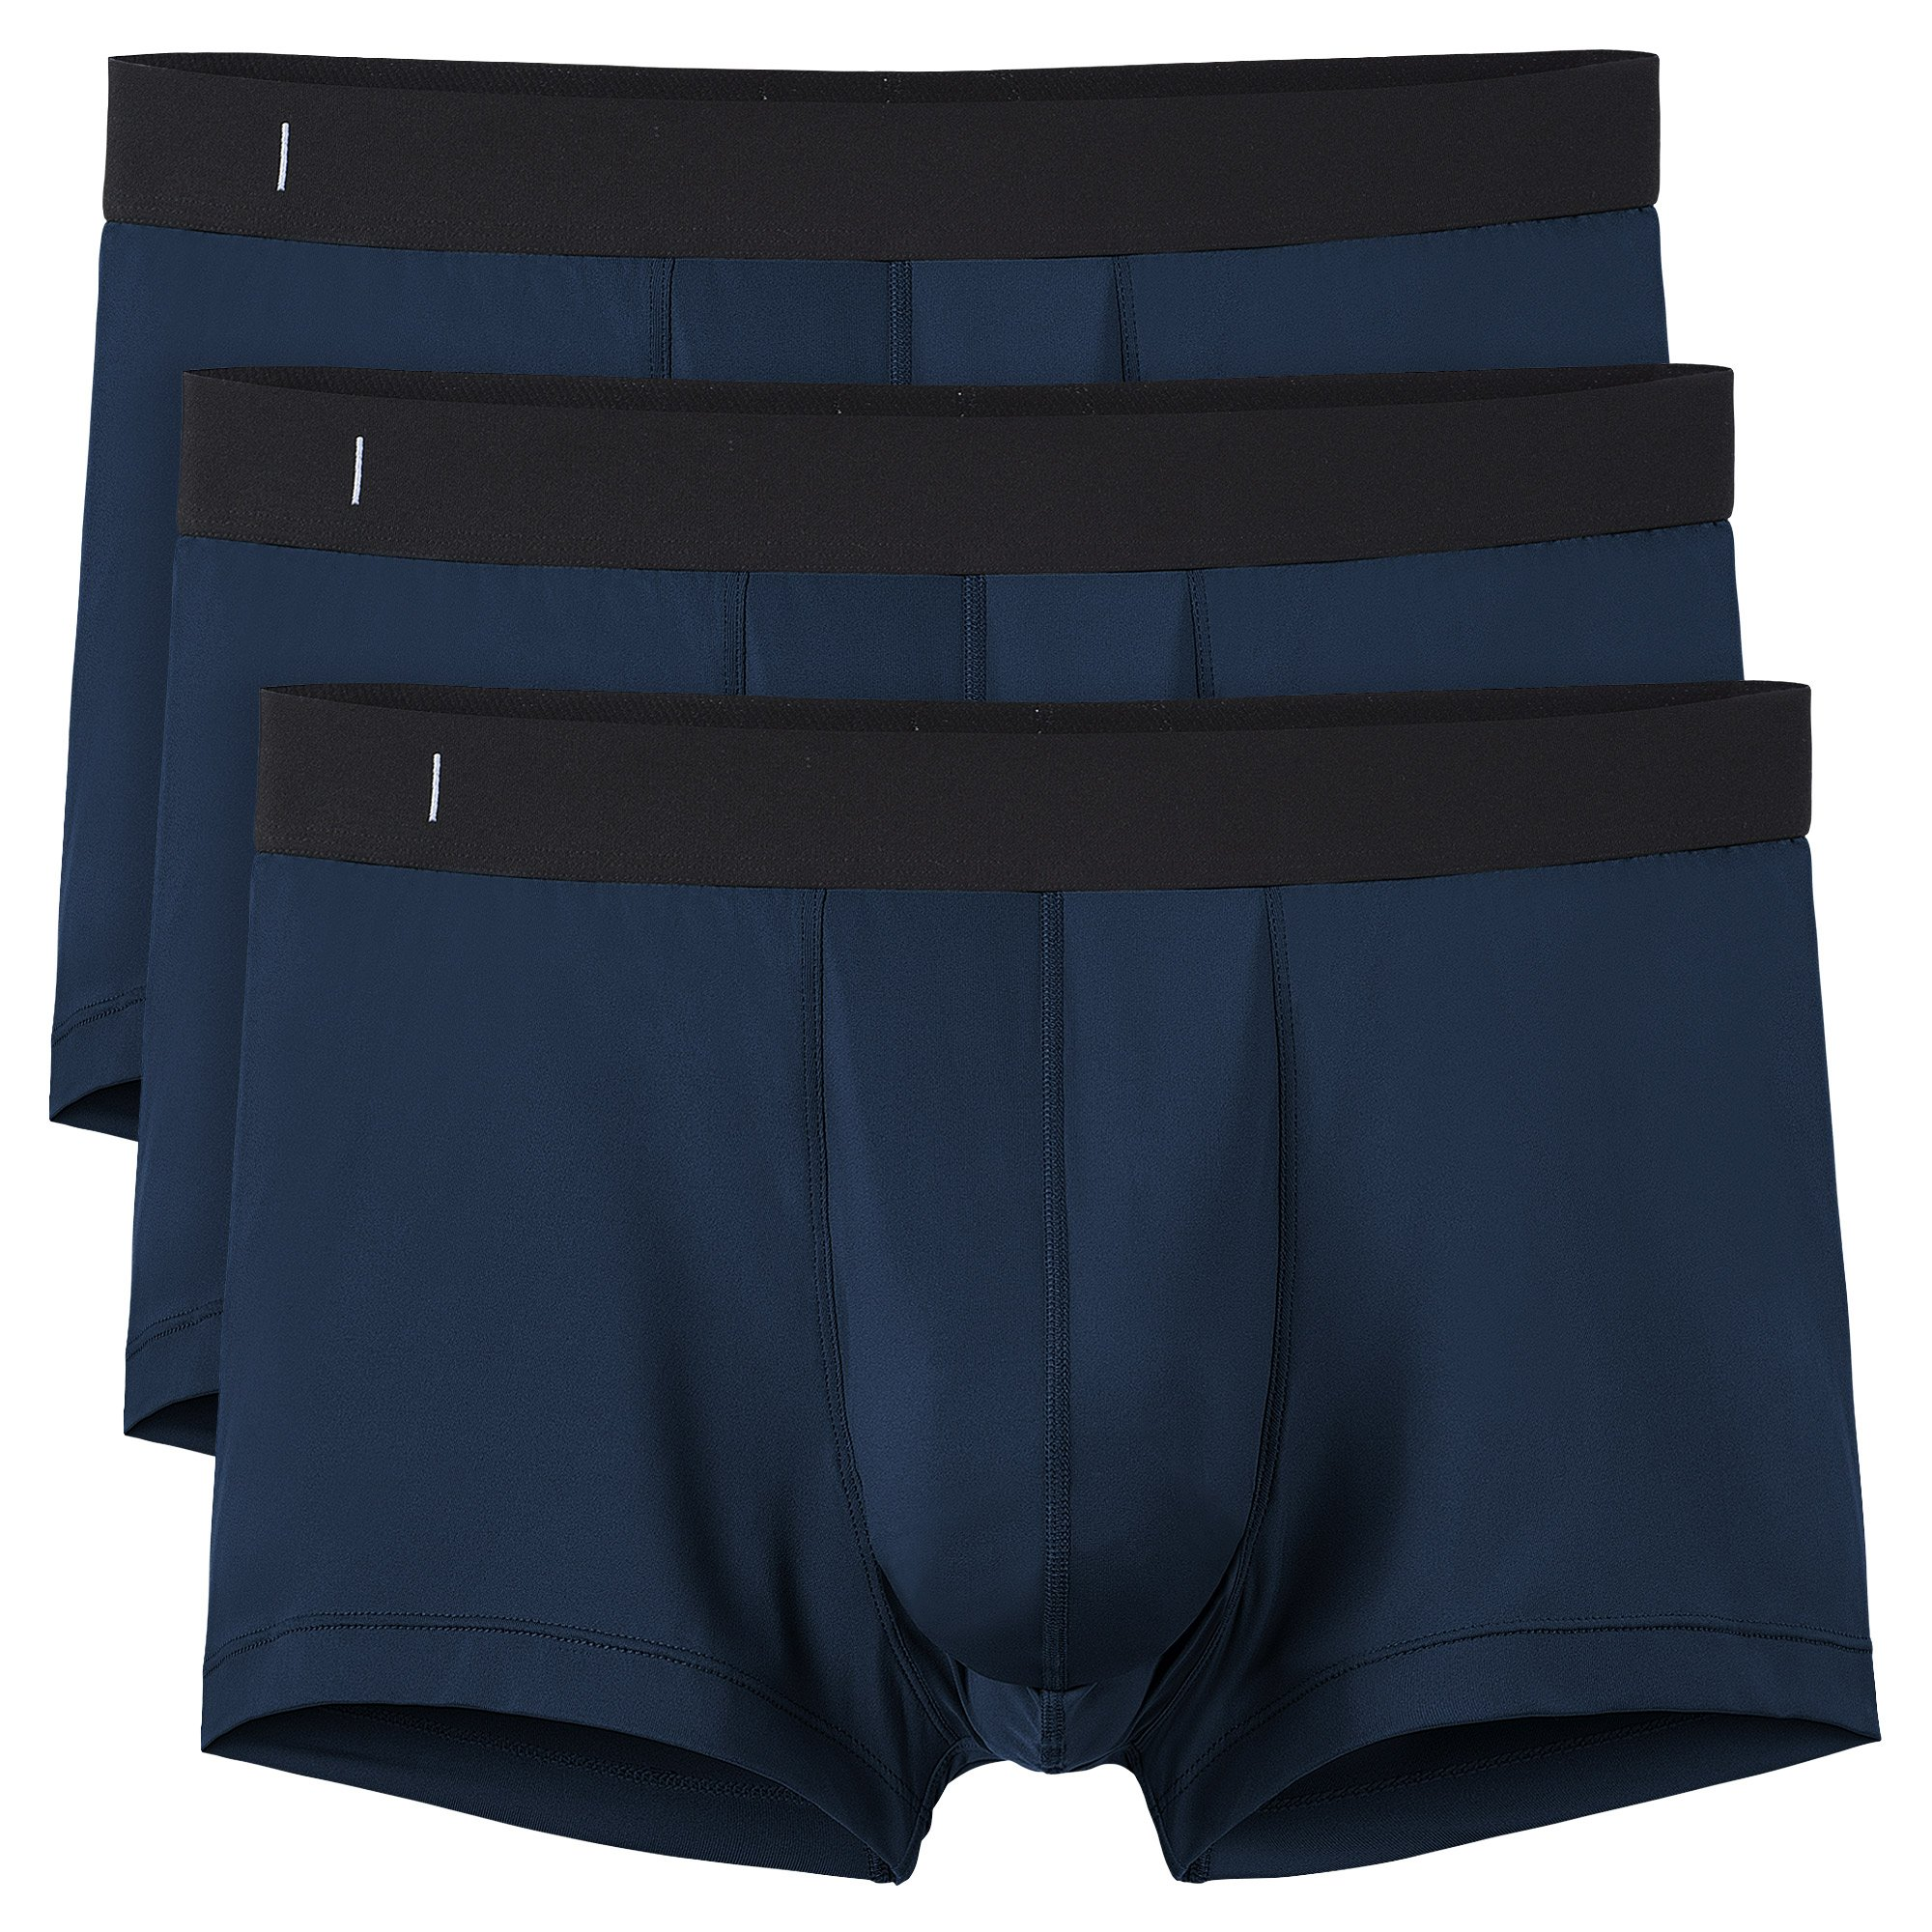 Separatec Men's 3 Pack Quick Dry Underwear Breathable Separate Pouch Trunks(L,Navy Blue)